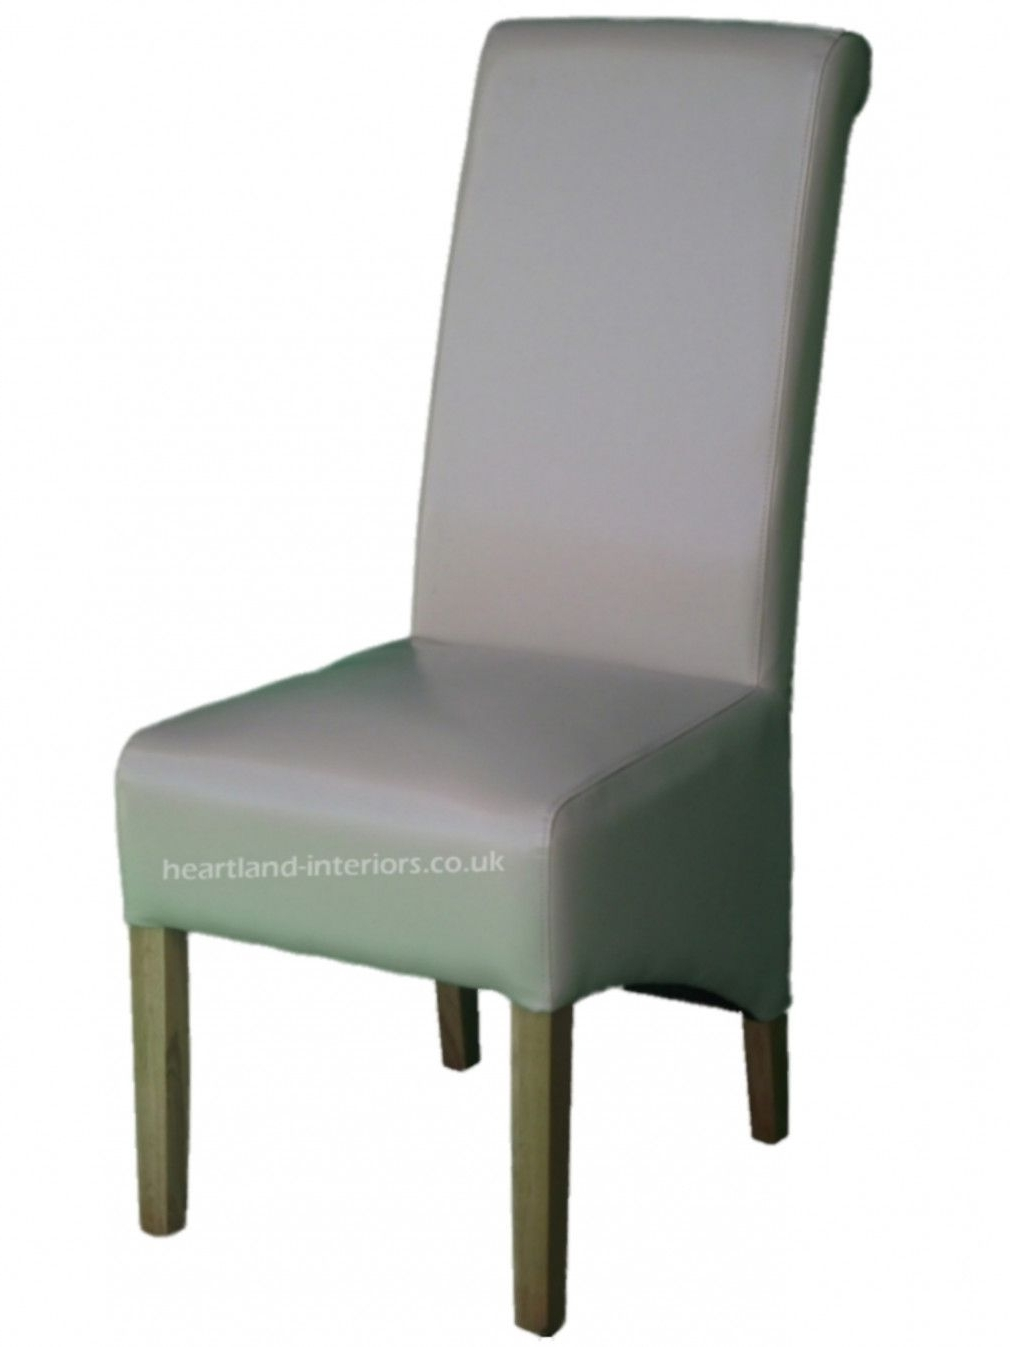 99+ Cream Leather Dining Chairs - Vintage Modern Furniture Check regarding Well-liked Cream Leather Dining Chairs